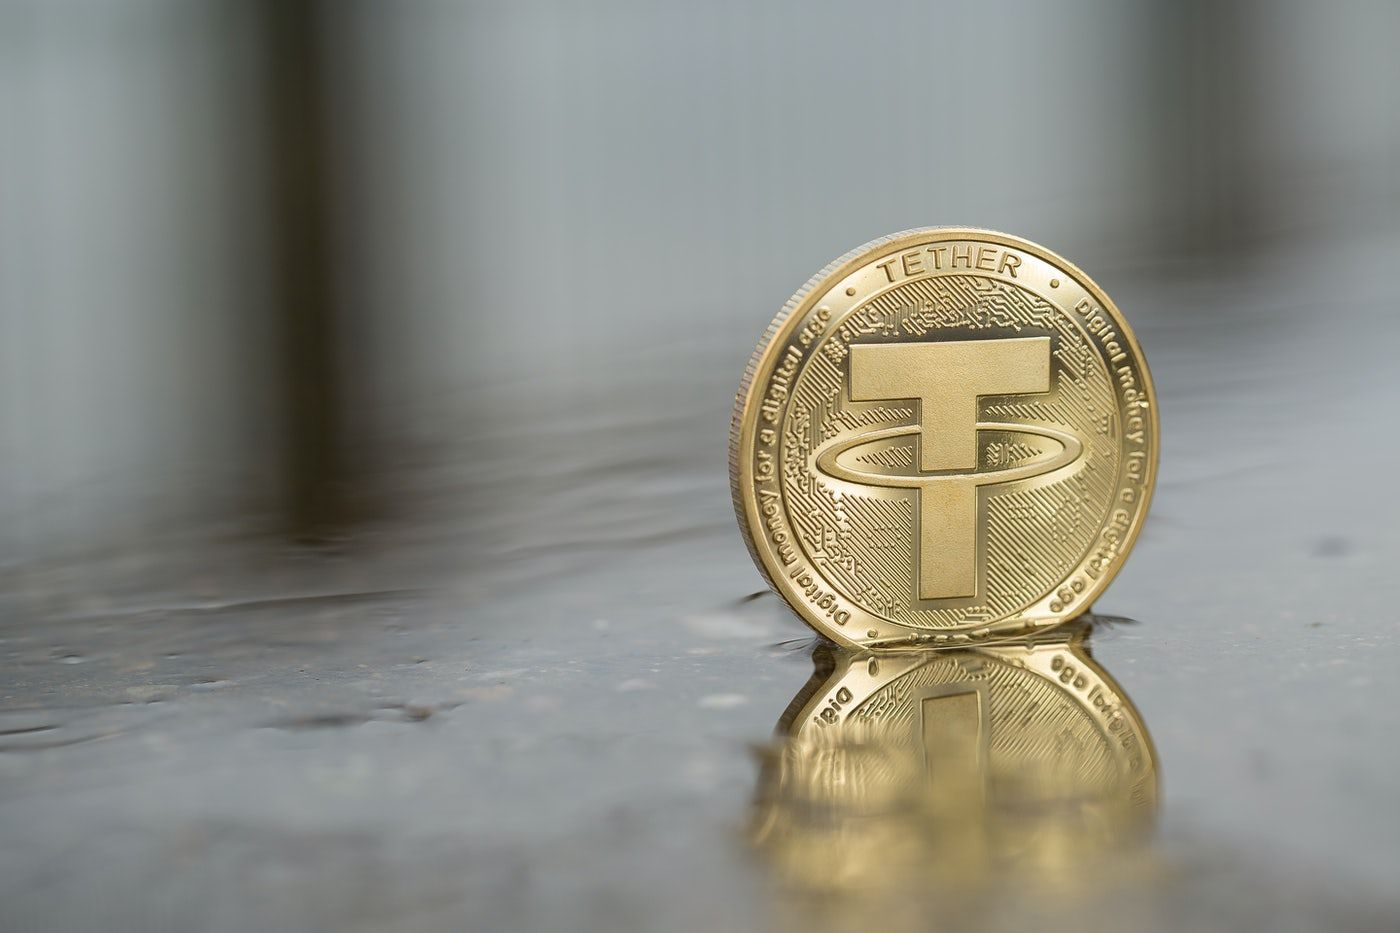 Tether's Settlement With the NYAG a 'Positive' For Industry